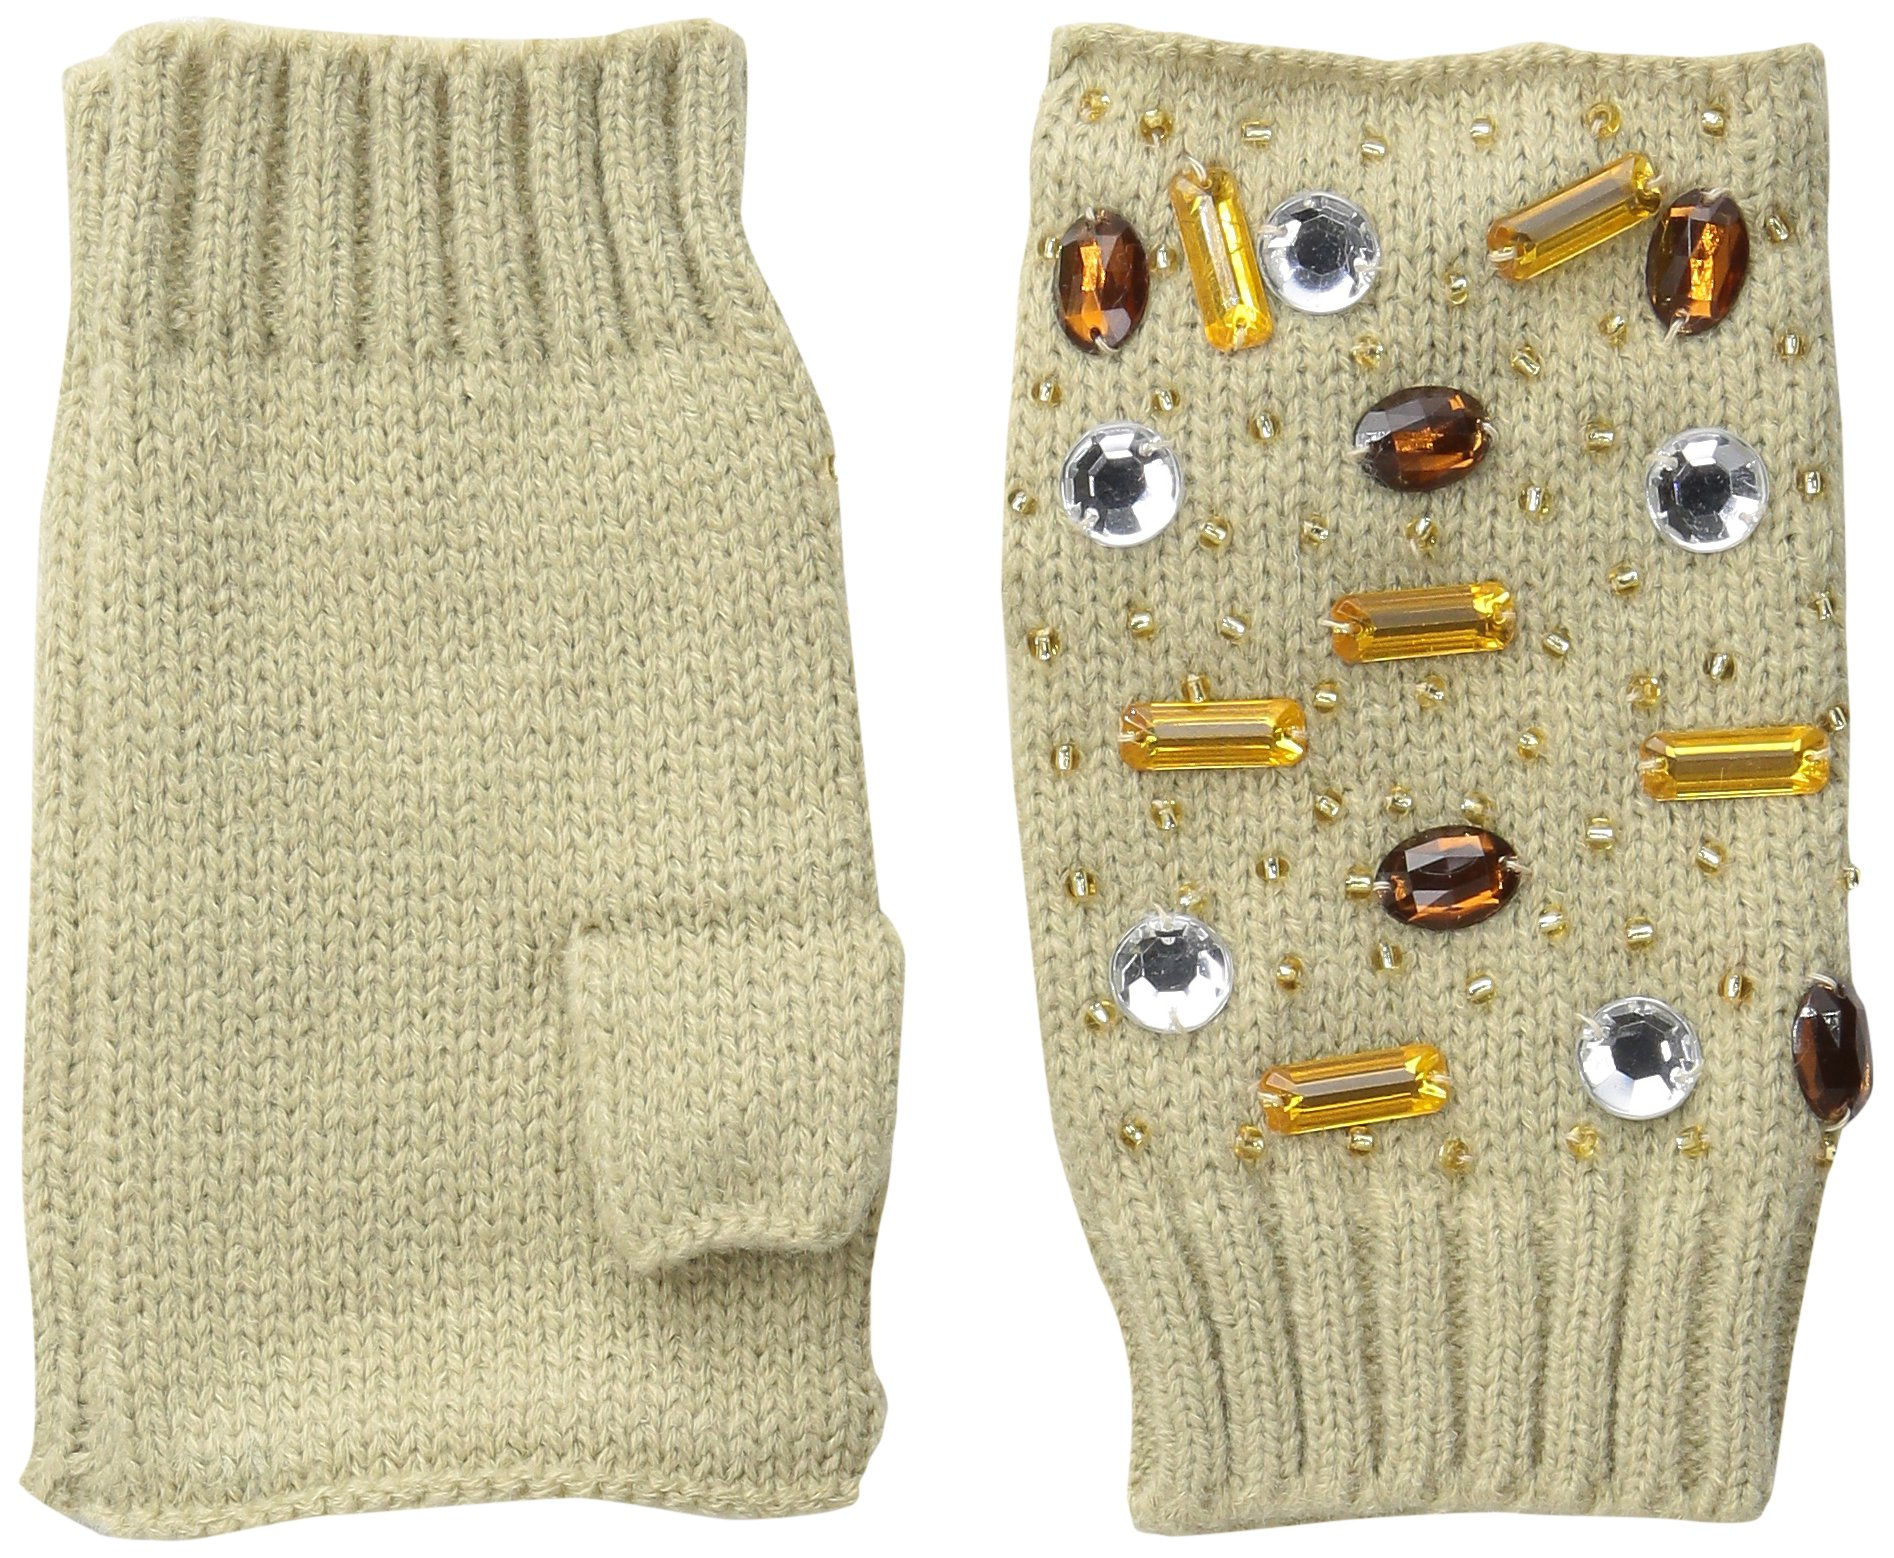 San Diego Hat Company Women's Fine Knit Fingerless Gloves with Gems, Camel, One Size